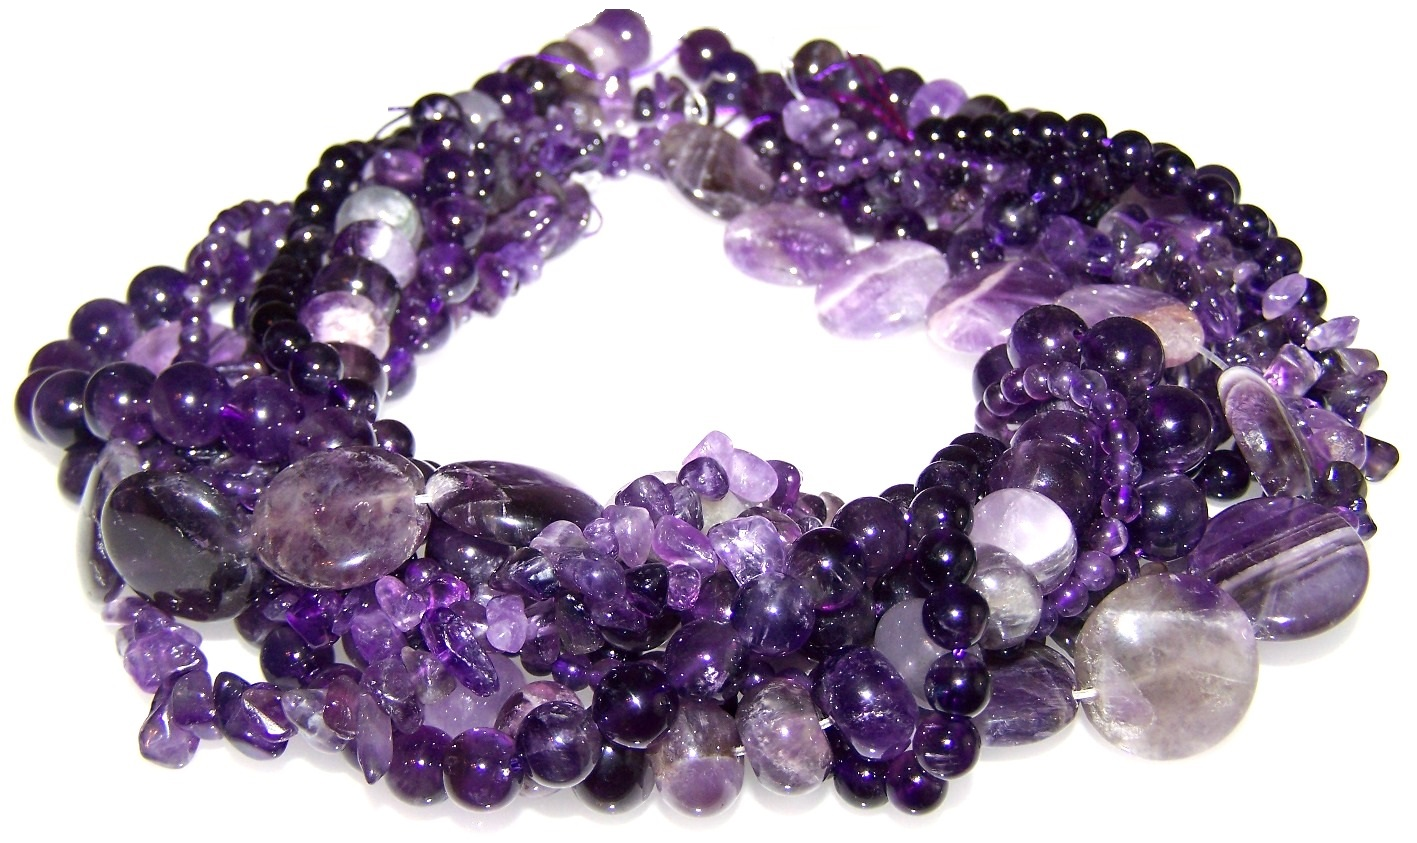 Amethyst Semiprecious Gemstone Bead Assortment